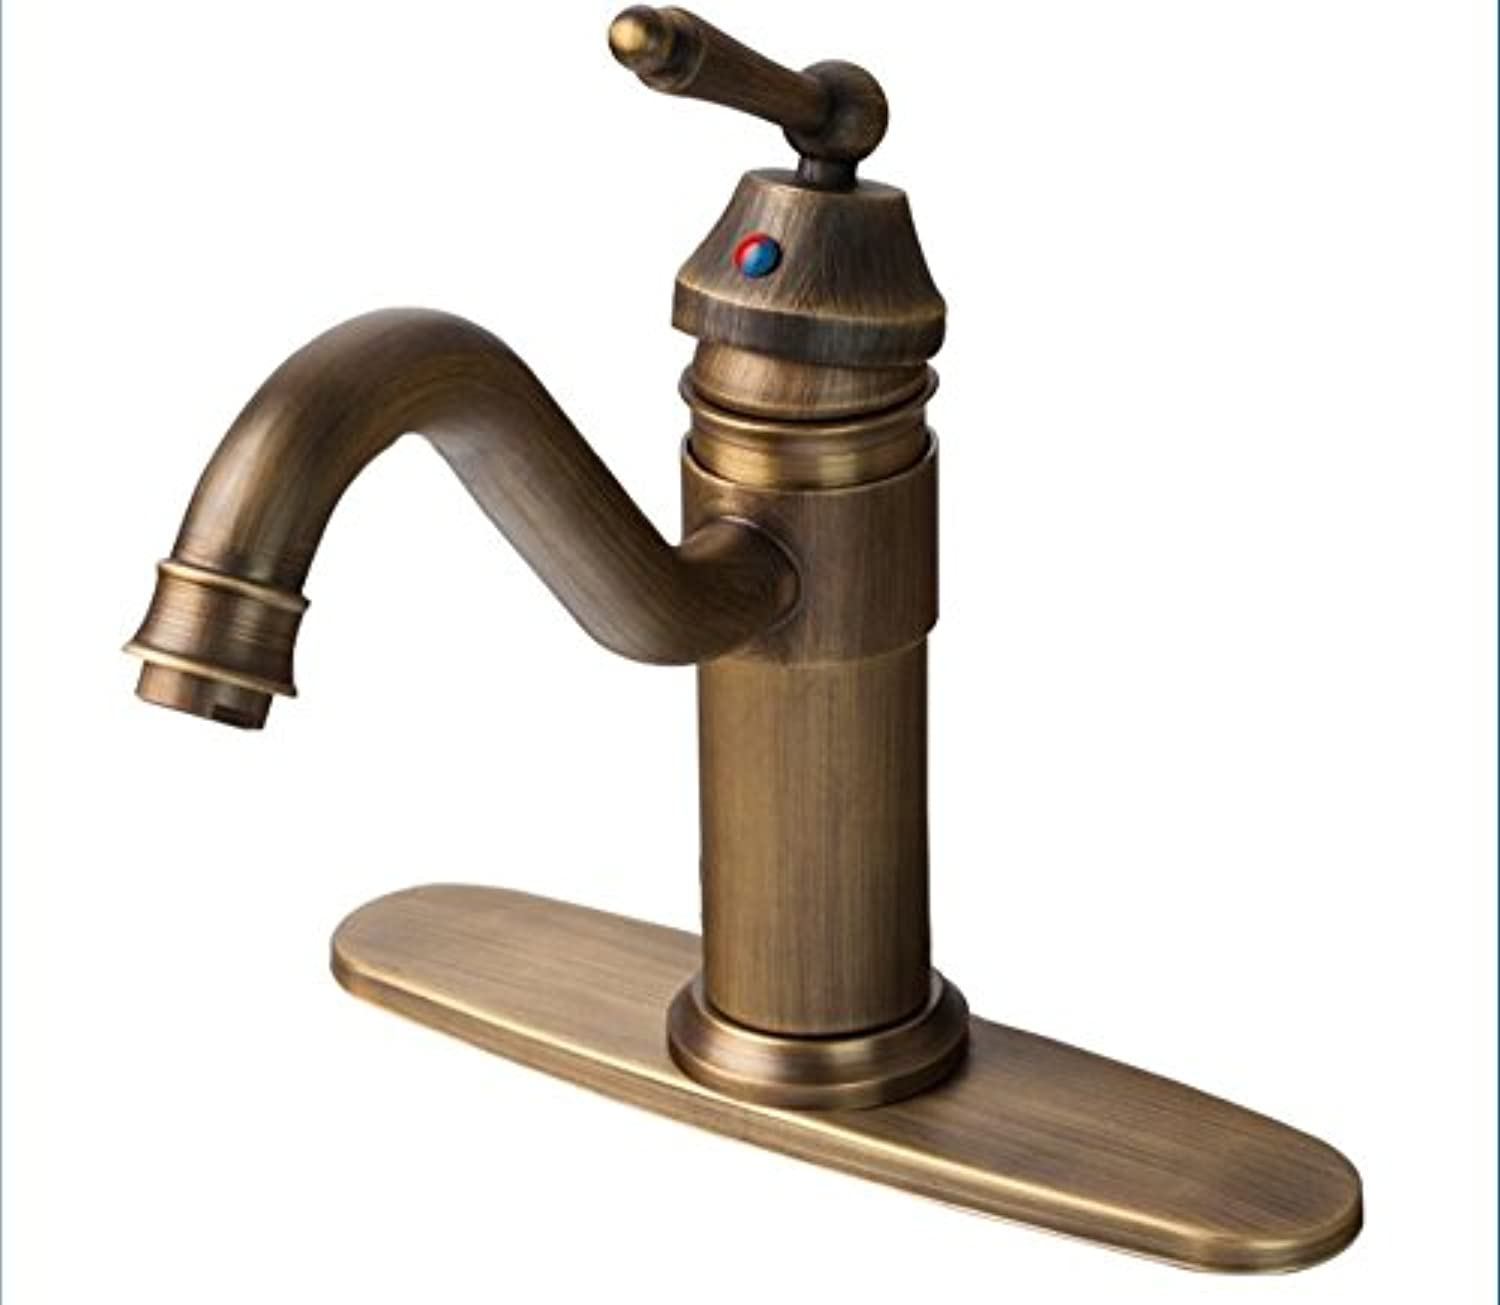 Makej Luxury Antique Brass Bathroom Sink Faucet Single Handle Swivel Spout Waterfall Mixer Tap with Cover Plate